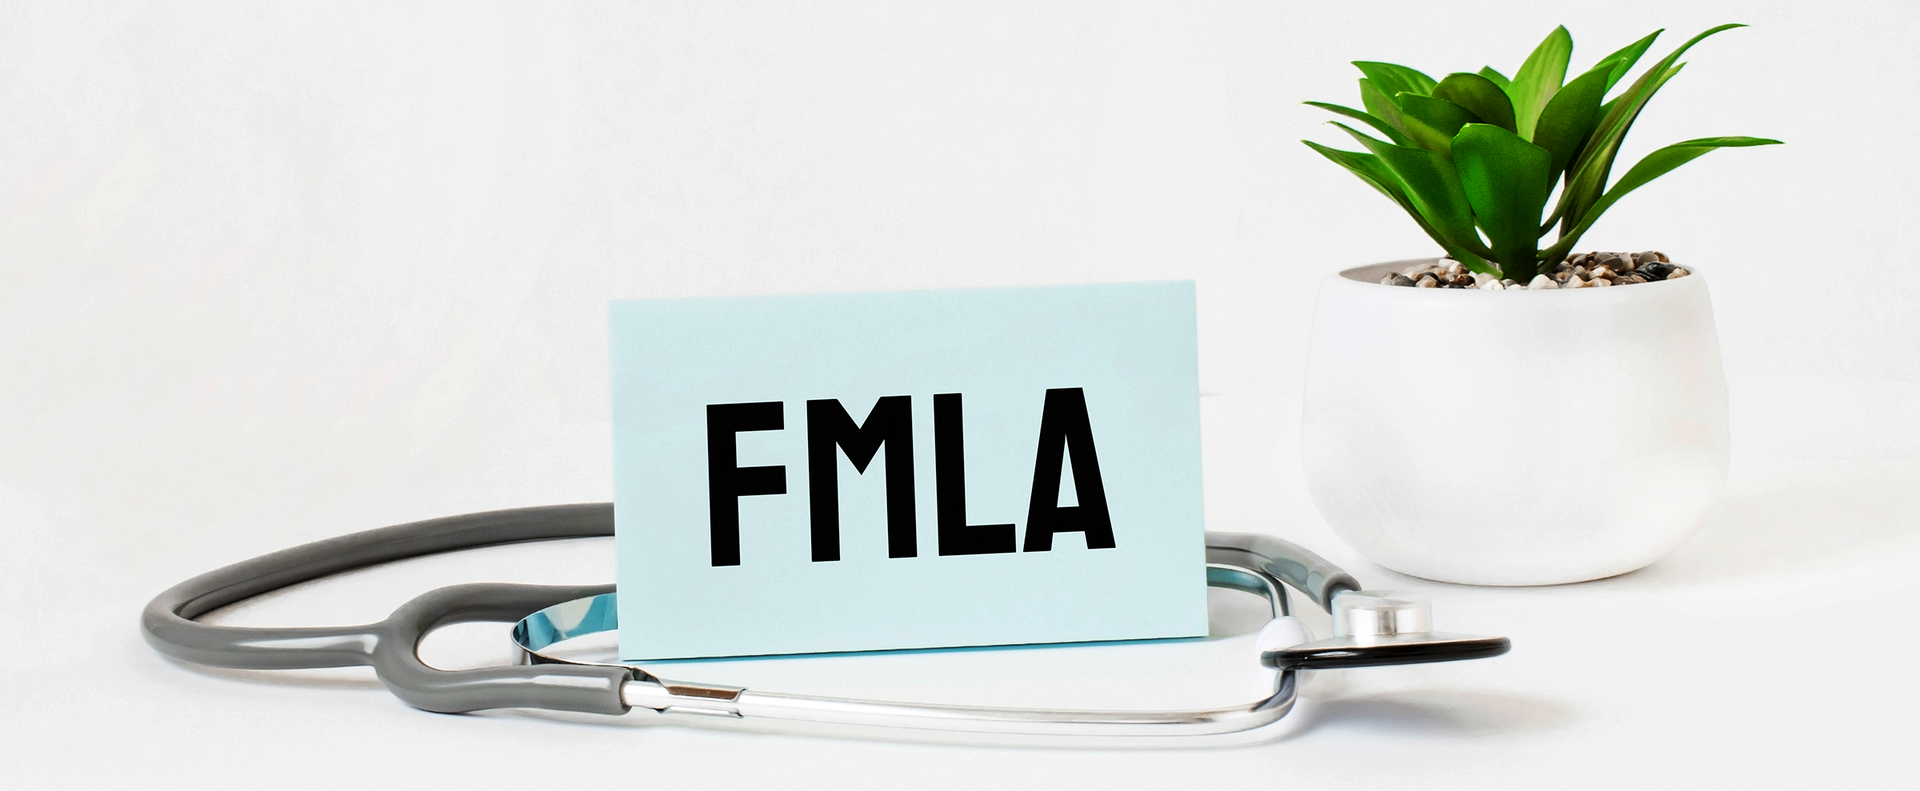 FMLA word on notebook,stethoscope and green plant